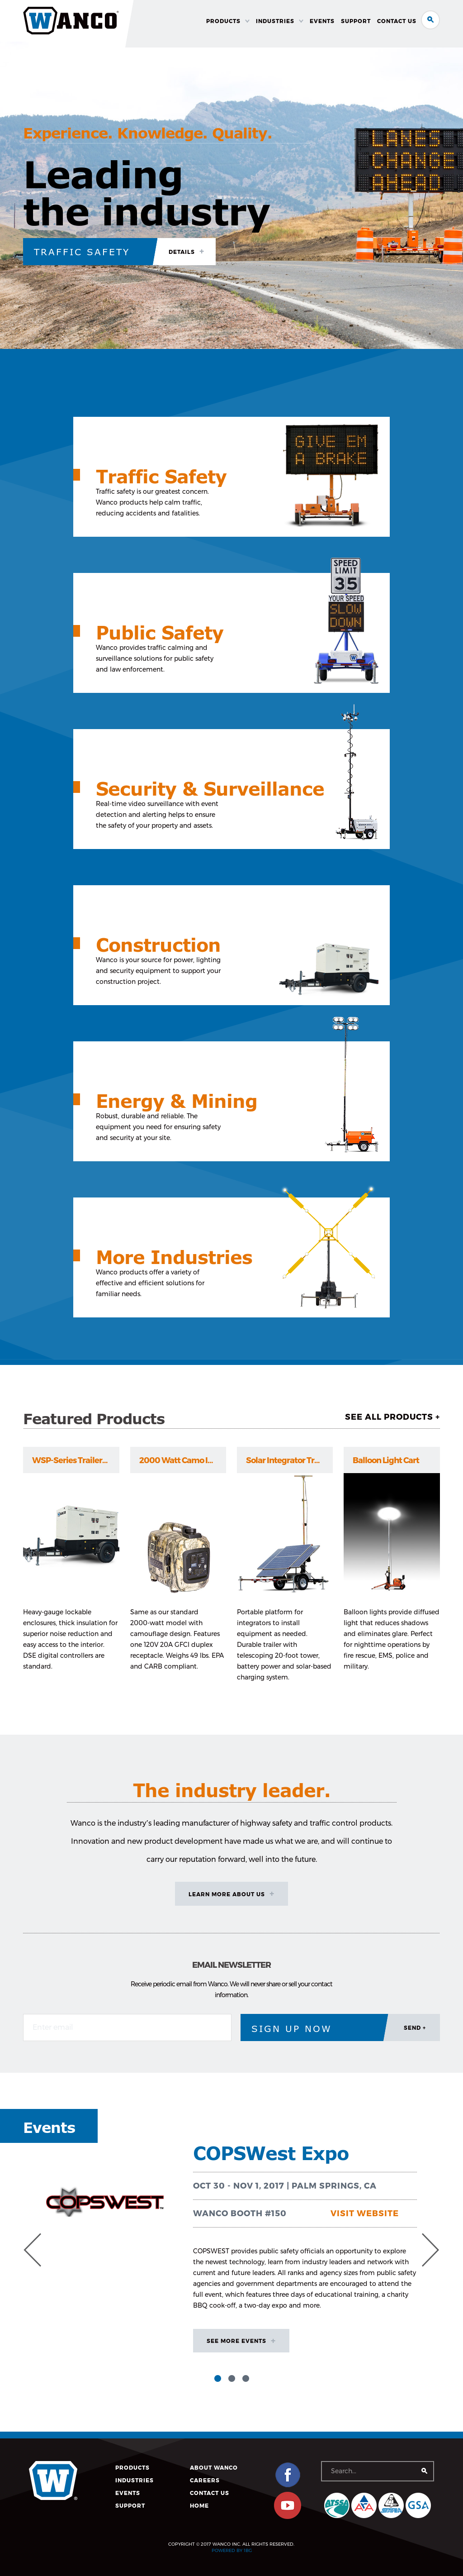 Wanco Compeors, Revenue and Employees - Owler Company Profile on